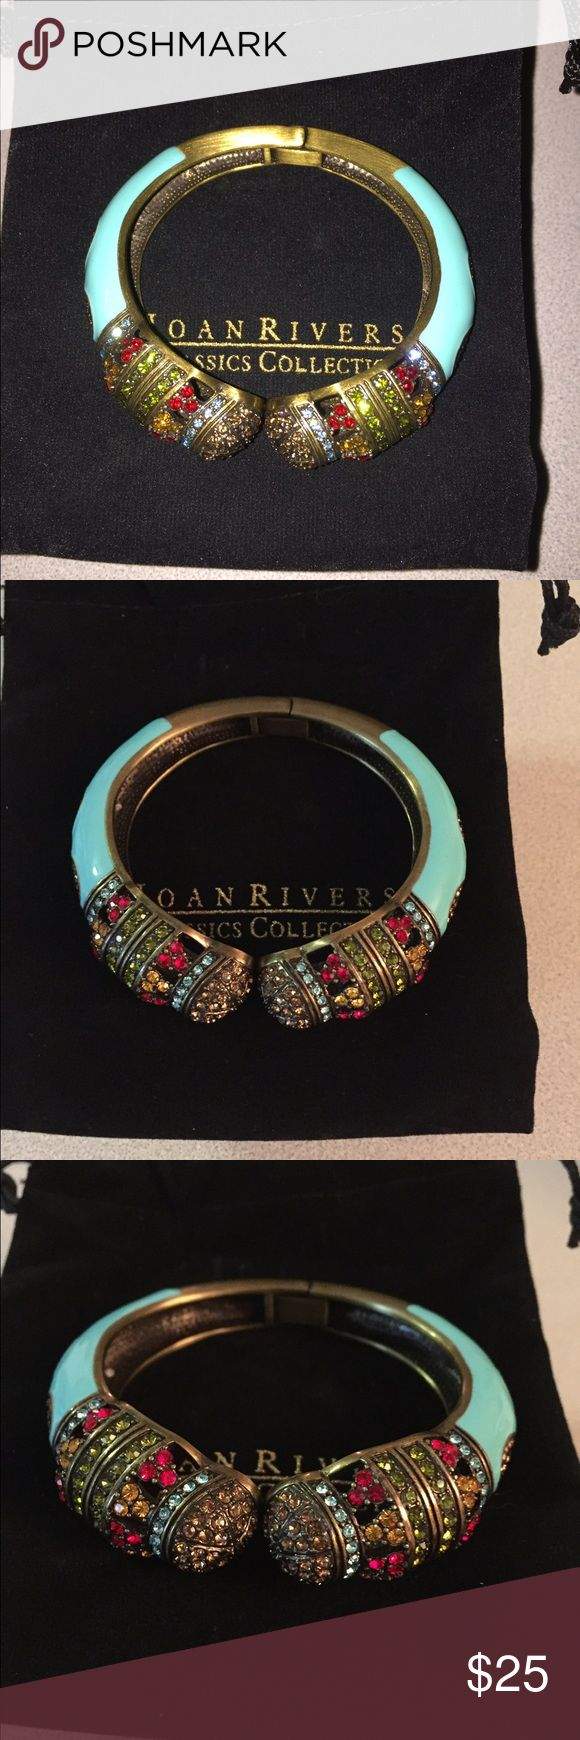 "Joan Rivers Classics Enamel Hinged Bangle Stunning and bold this bangle makes a statement! Antique gold tone, enameled turquoise color with red, orange, blue, green and light brown crystals. Hinged. Fits average size wrist. New and in original box. Measures approximately 3/4"" wide. Joan Rivers Jewelry Bracelets"